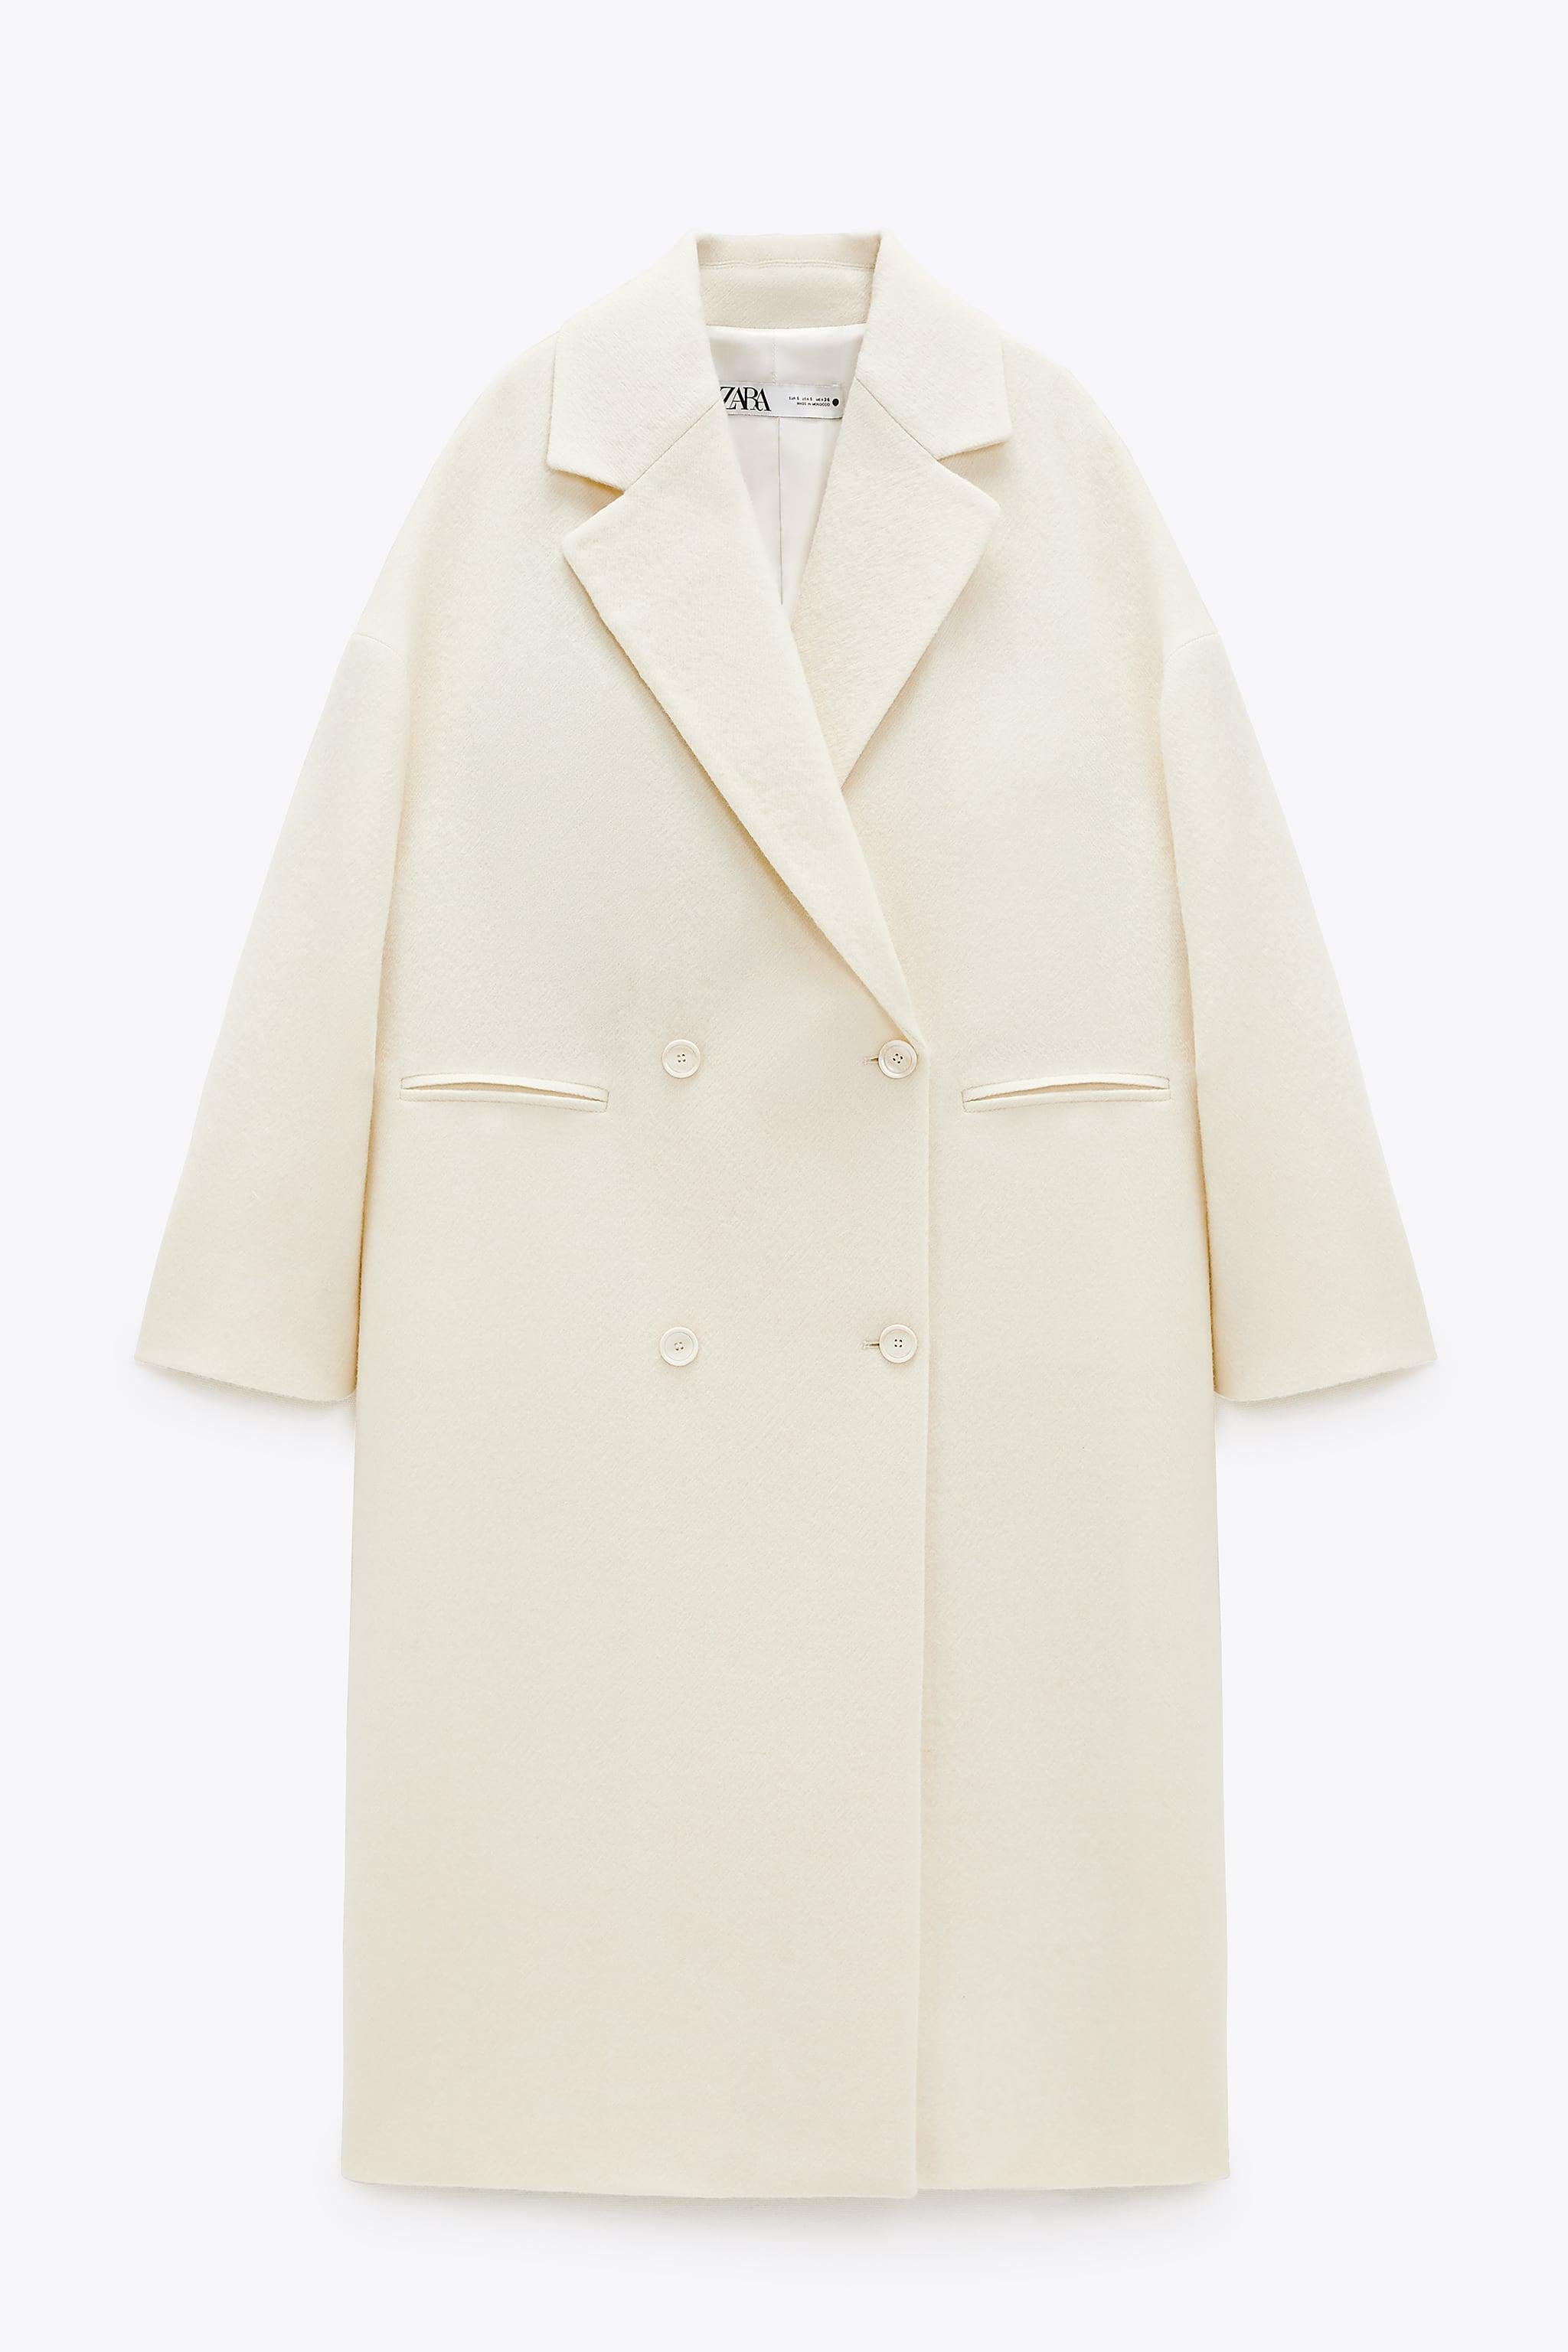 OVERSIZED WOOL COAT LIMITED EDITION 9